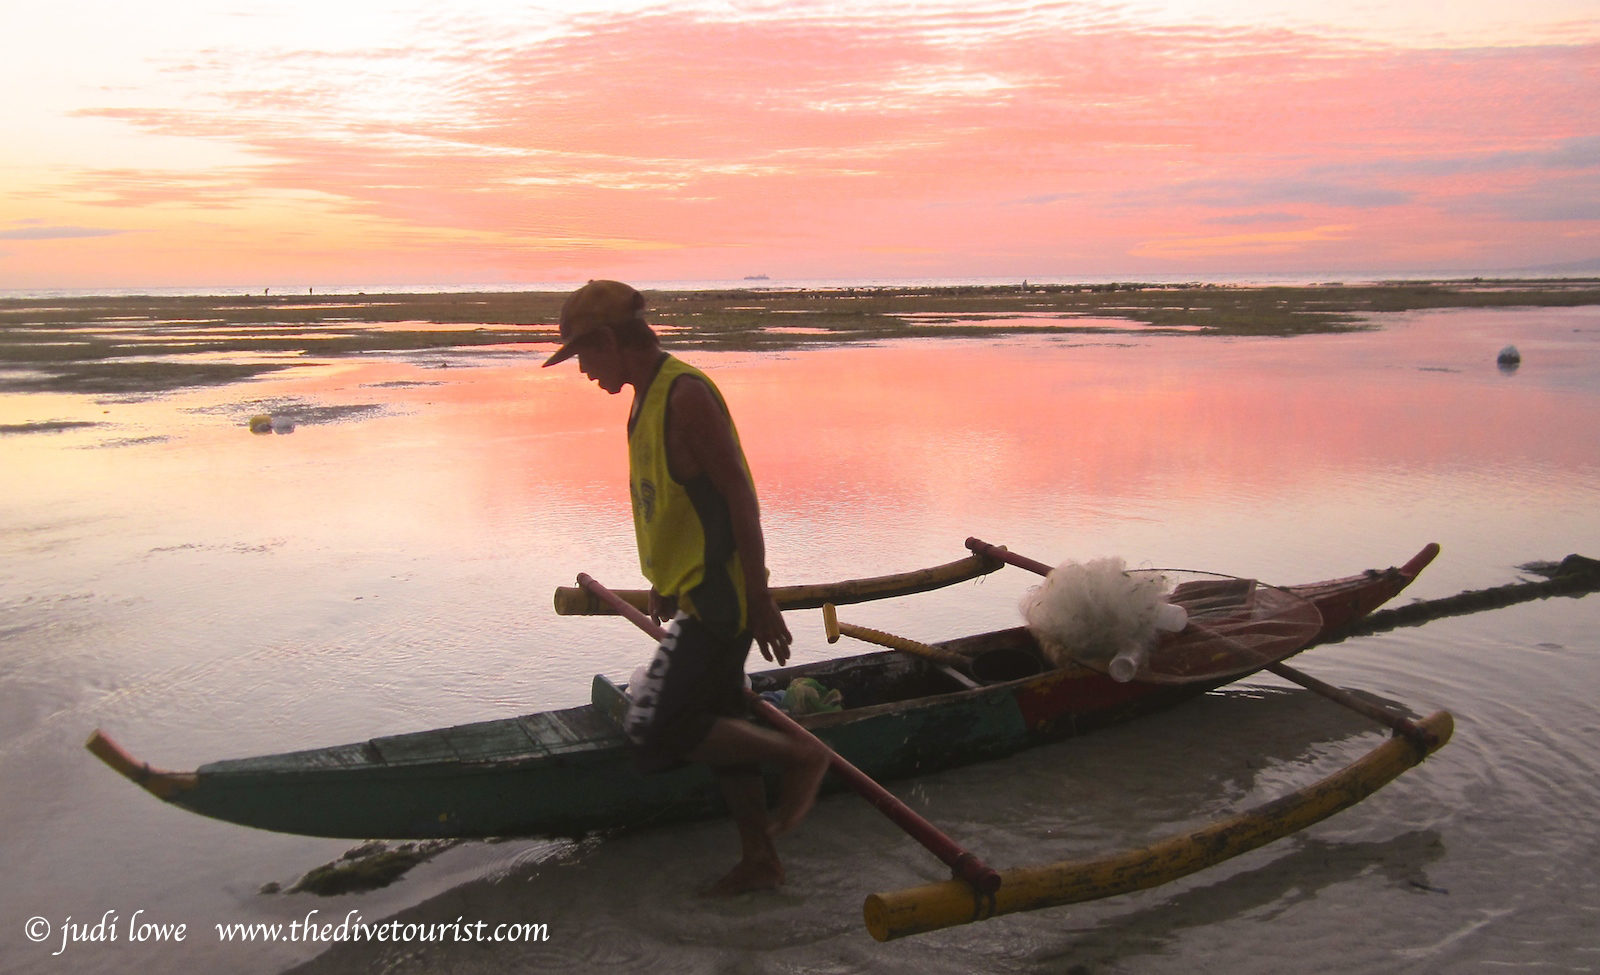 Local fishers of Oslob